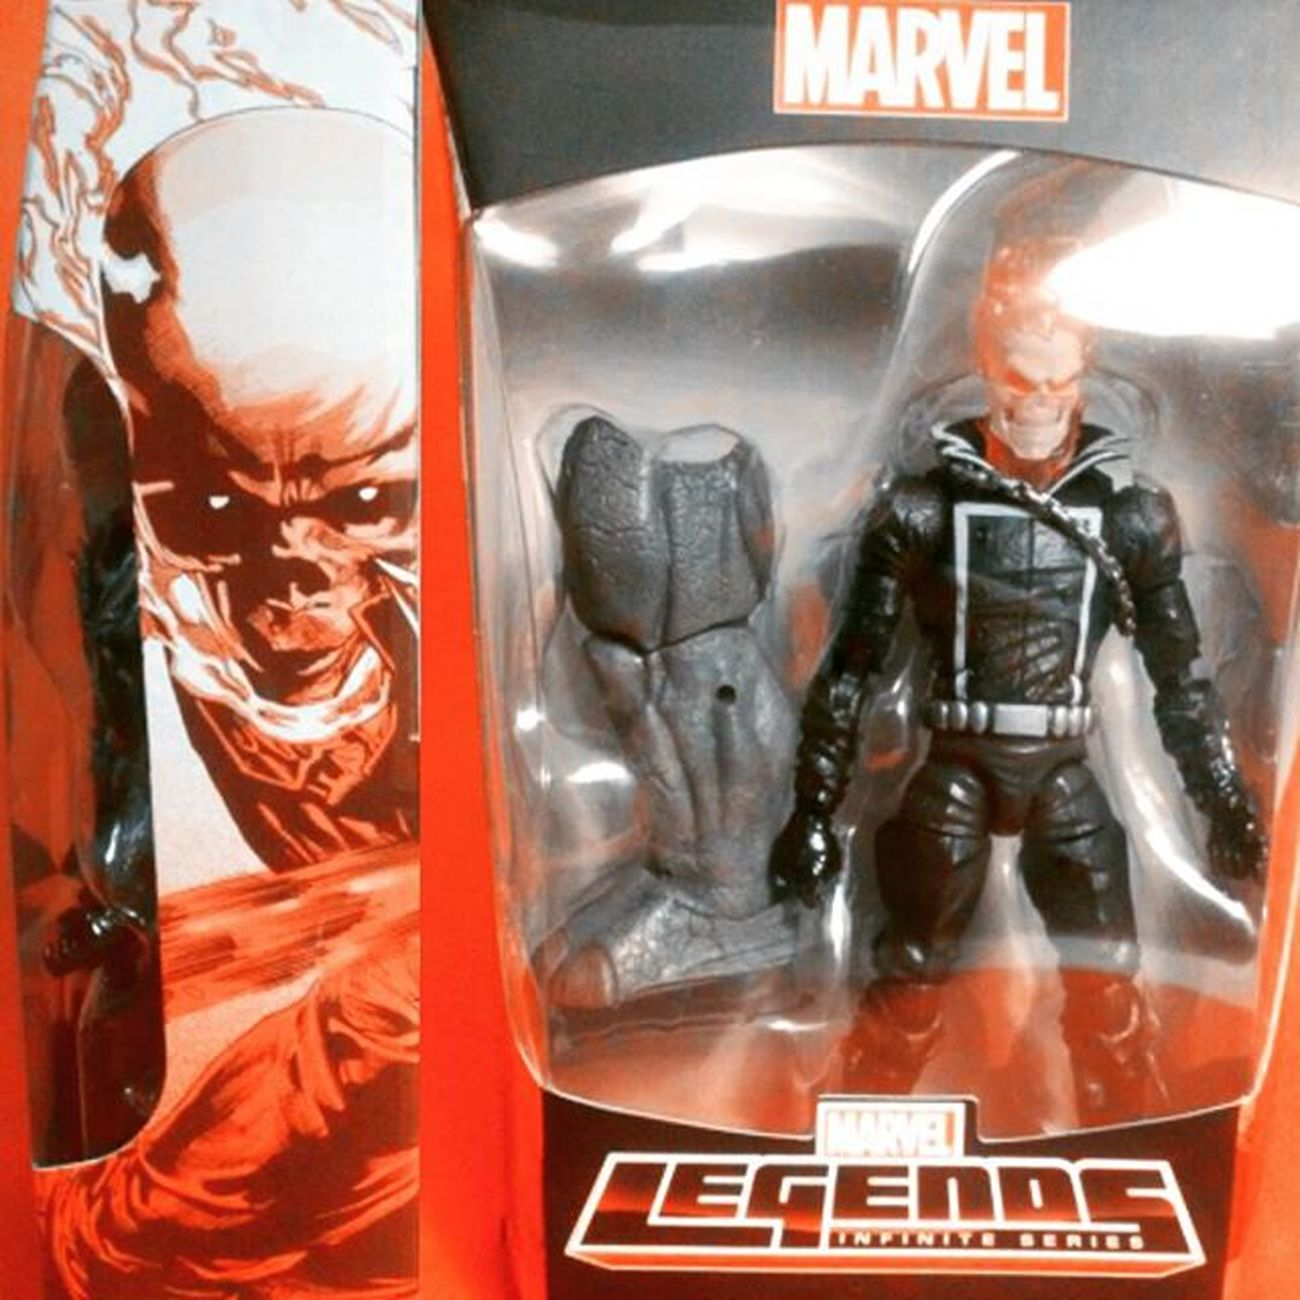 Times have been tough but glad i finally got my hands on this figure 😄 Marvellegends Toycommunity Toycollector Toystagram Toyslagram Rebeltoysclub Ata_dreadnoughts Toygroup_alliance Toyleague Toypops Toycrewbuddies Toyartistry_elite Toyelites Toyporn Toyboner Toyphotogallery Toyphotogram Toysaremydrugs Toysarehellasick Ghostrider Actionfigurephotography Actionfigures Toycreativity ACBA Articulatedcomicbookart toyunion toynation toyrevolution toyuniverse toyplanet